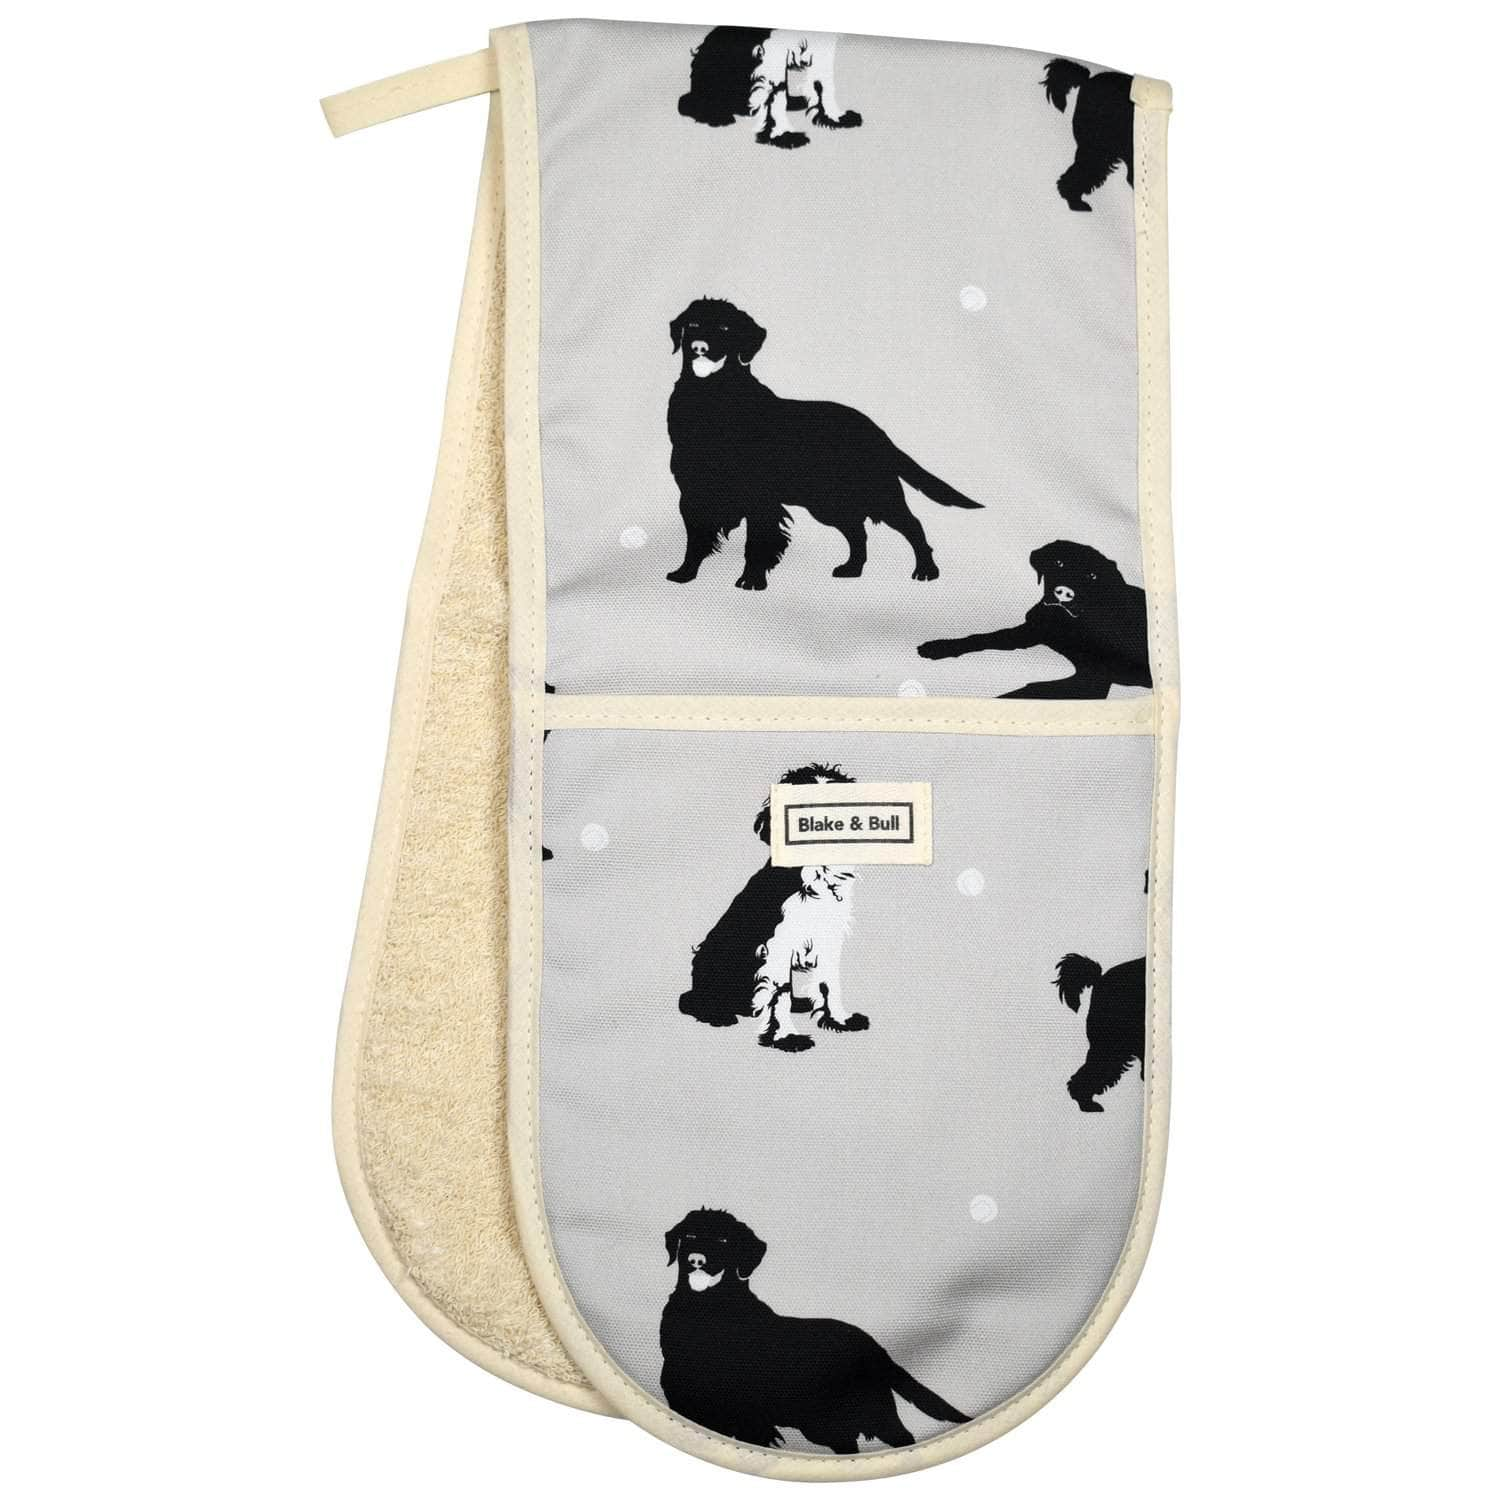 Oven glove for range cookers - 'Good dog!'